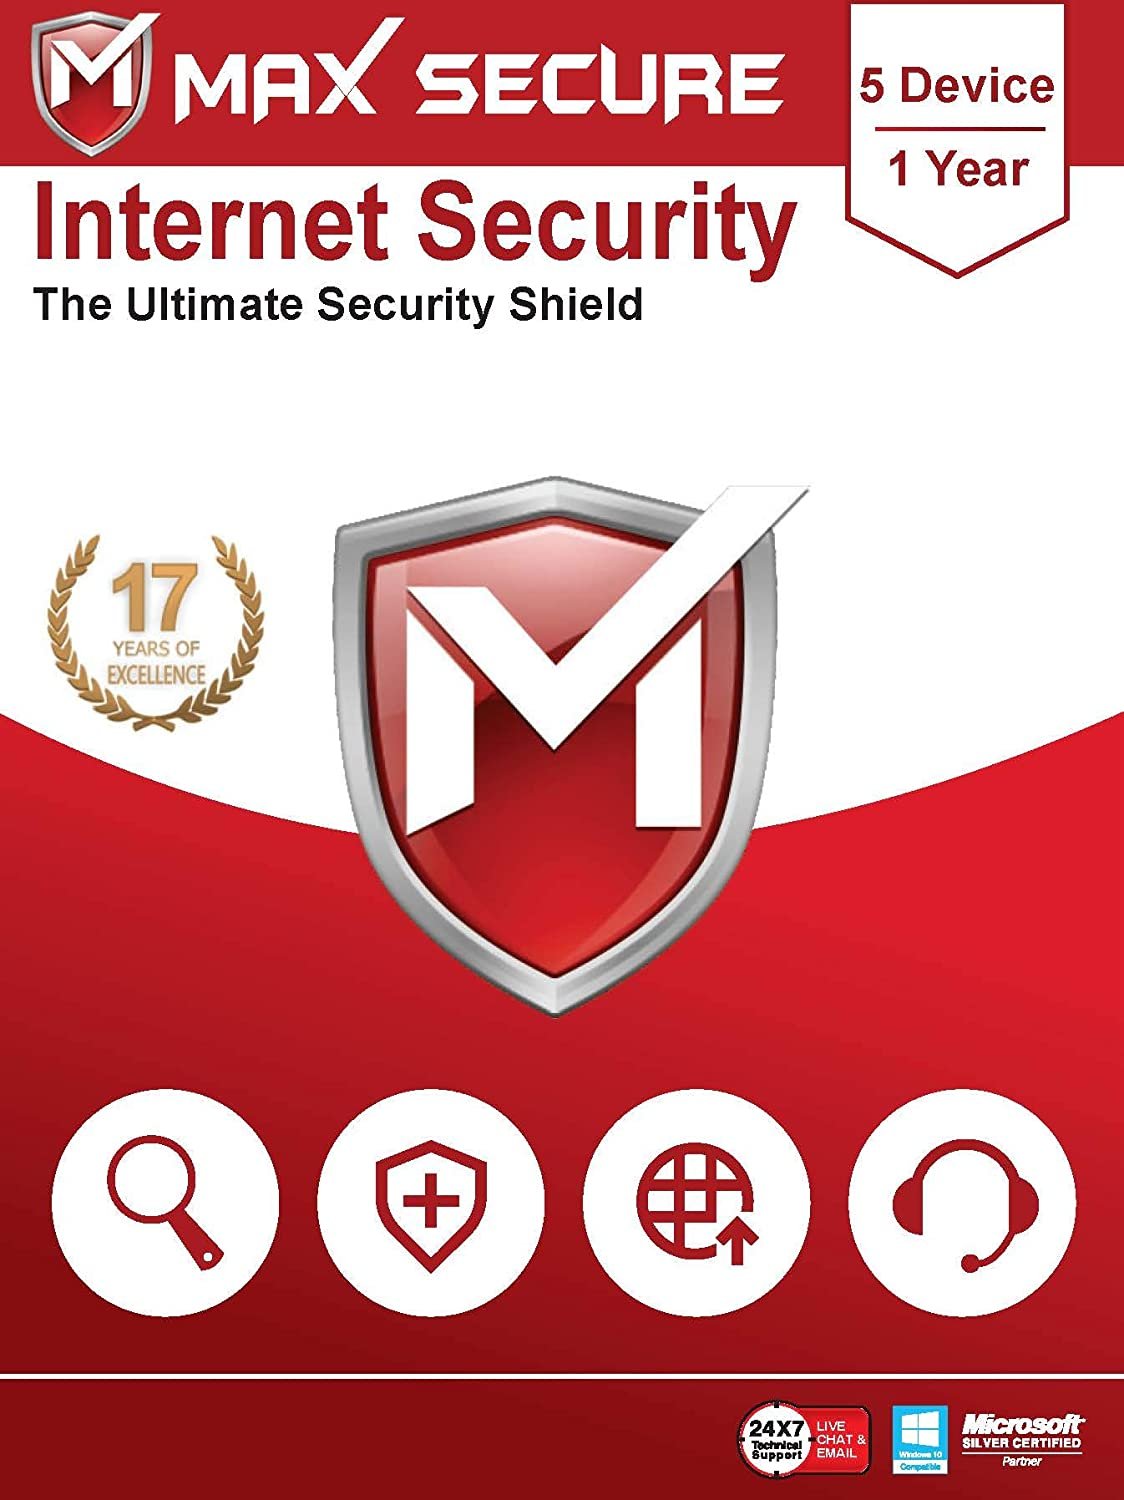 Max Secure Software Internet Security for PC 2019 | Antivirus | 5 Device | 1 Year (Activation Key Card)